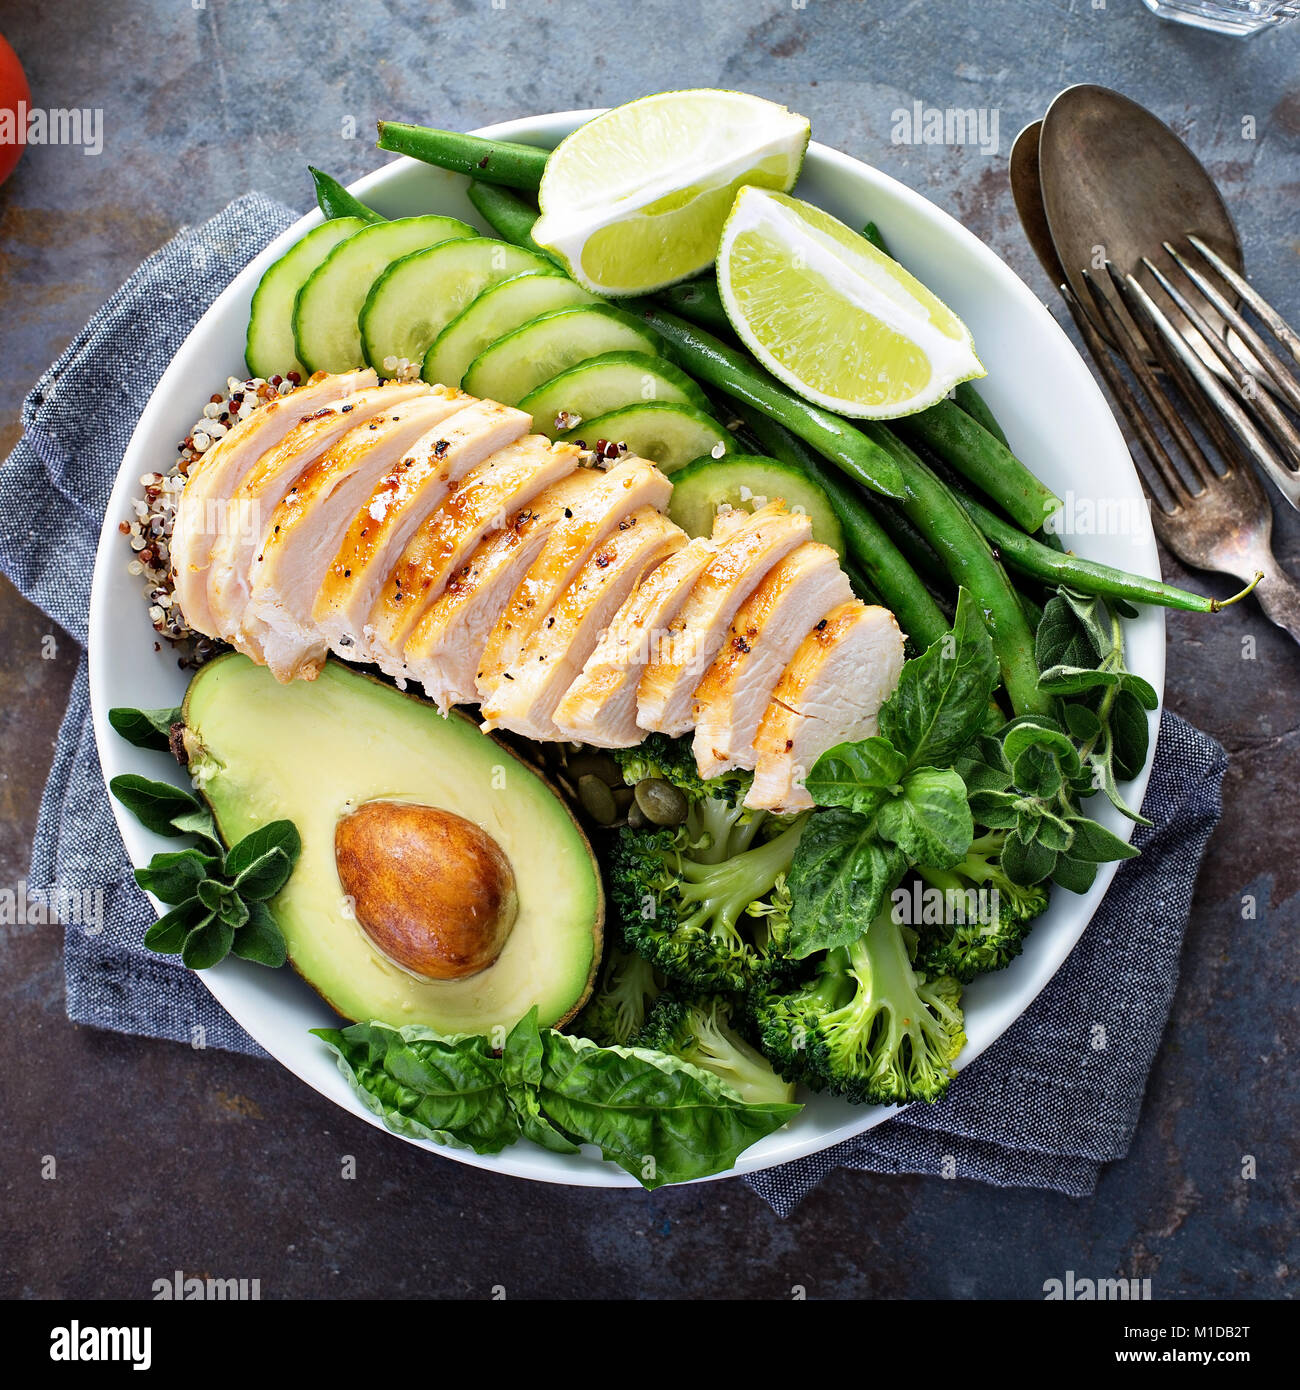 Green vegan lunch bowl with quinoa and avocado - Stock Image